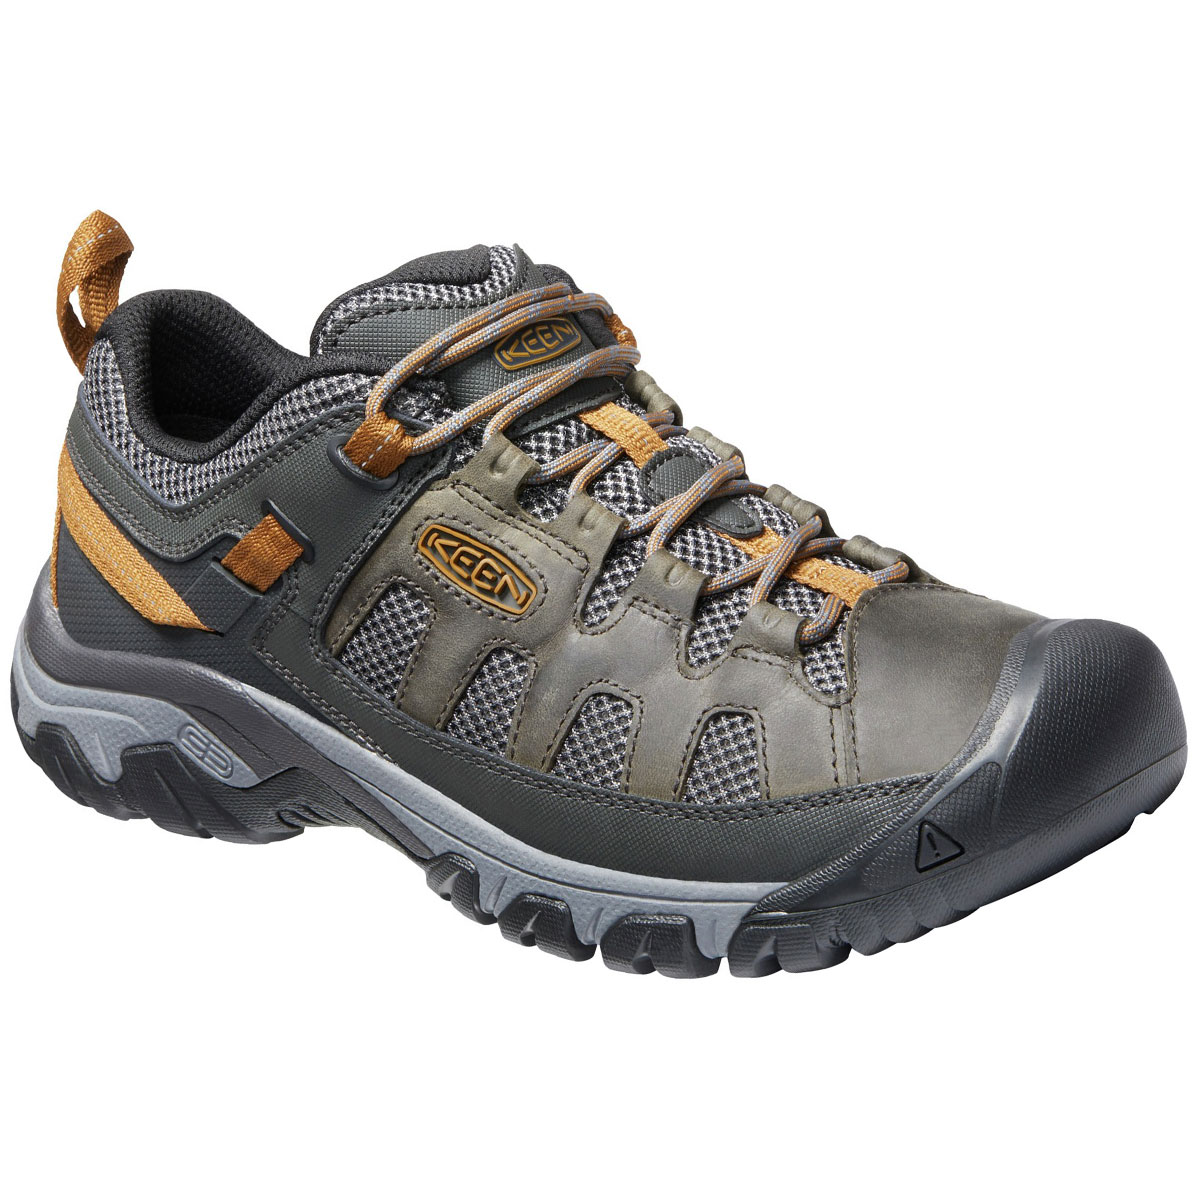 Keen Men's Targhee Vent Low Hiking Shoes - Brown, 13